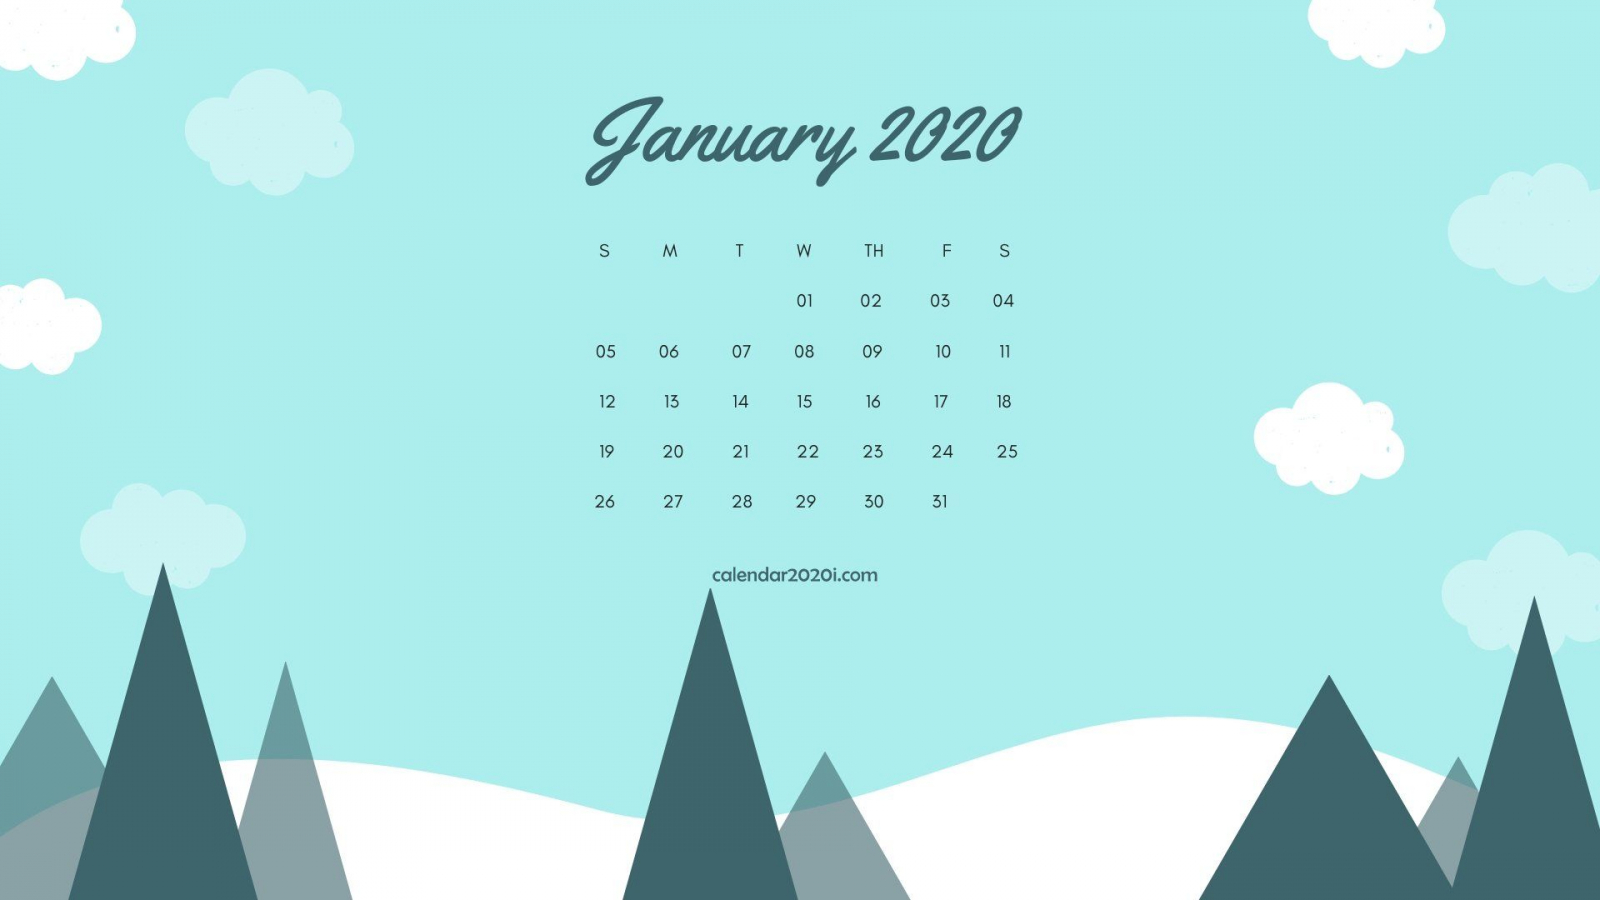 Free download January 2020 Calendar Wallpapers Top January ...